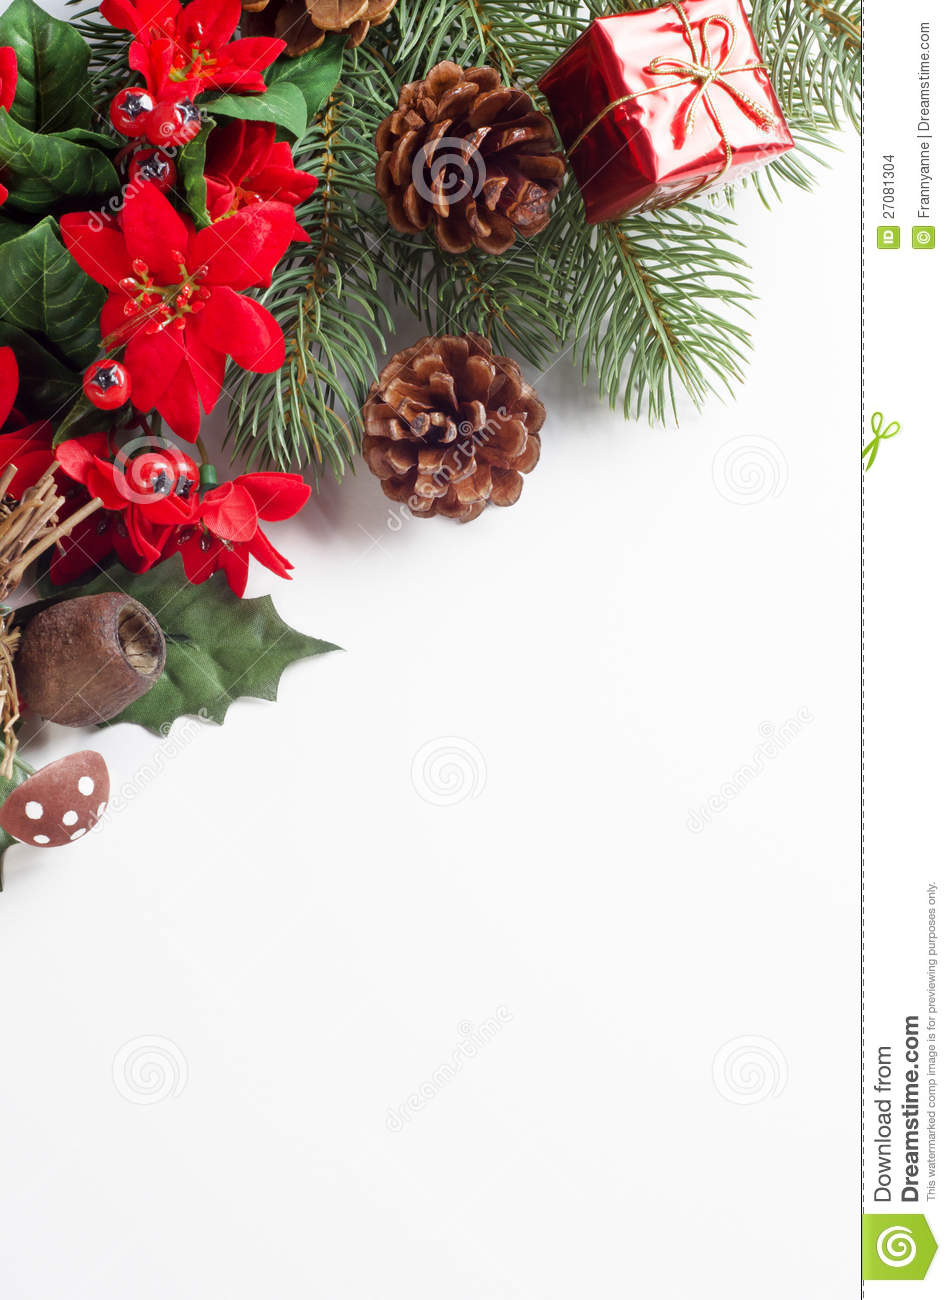 Christmas Flora Corner Border Stock Photo - Image of themed, berries ...